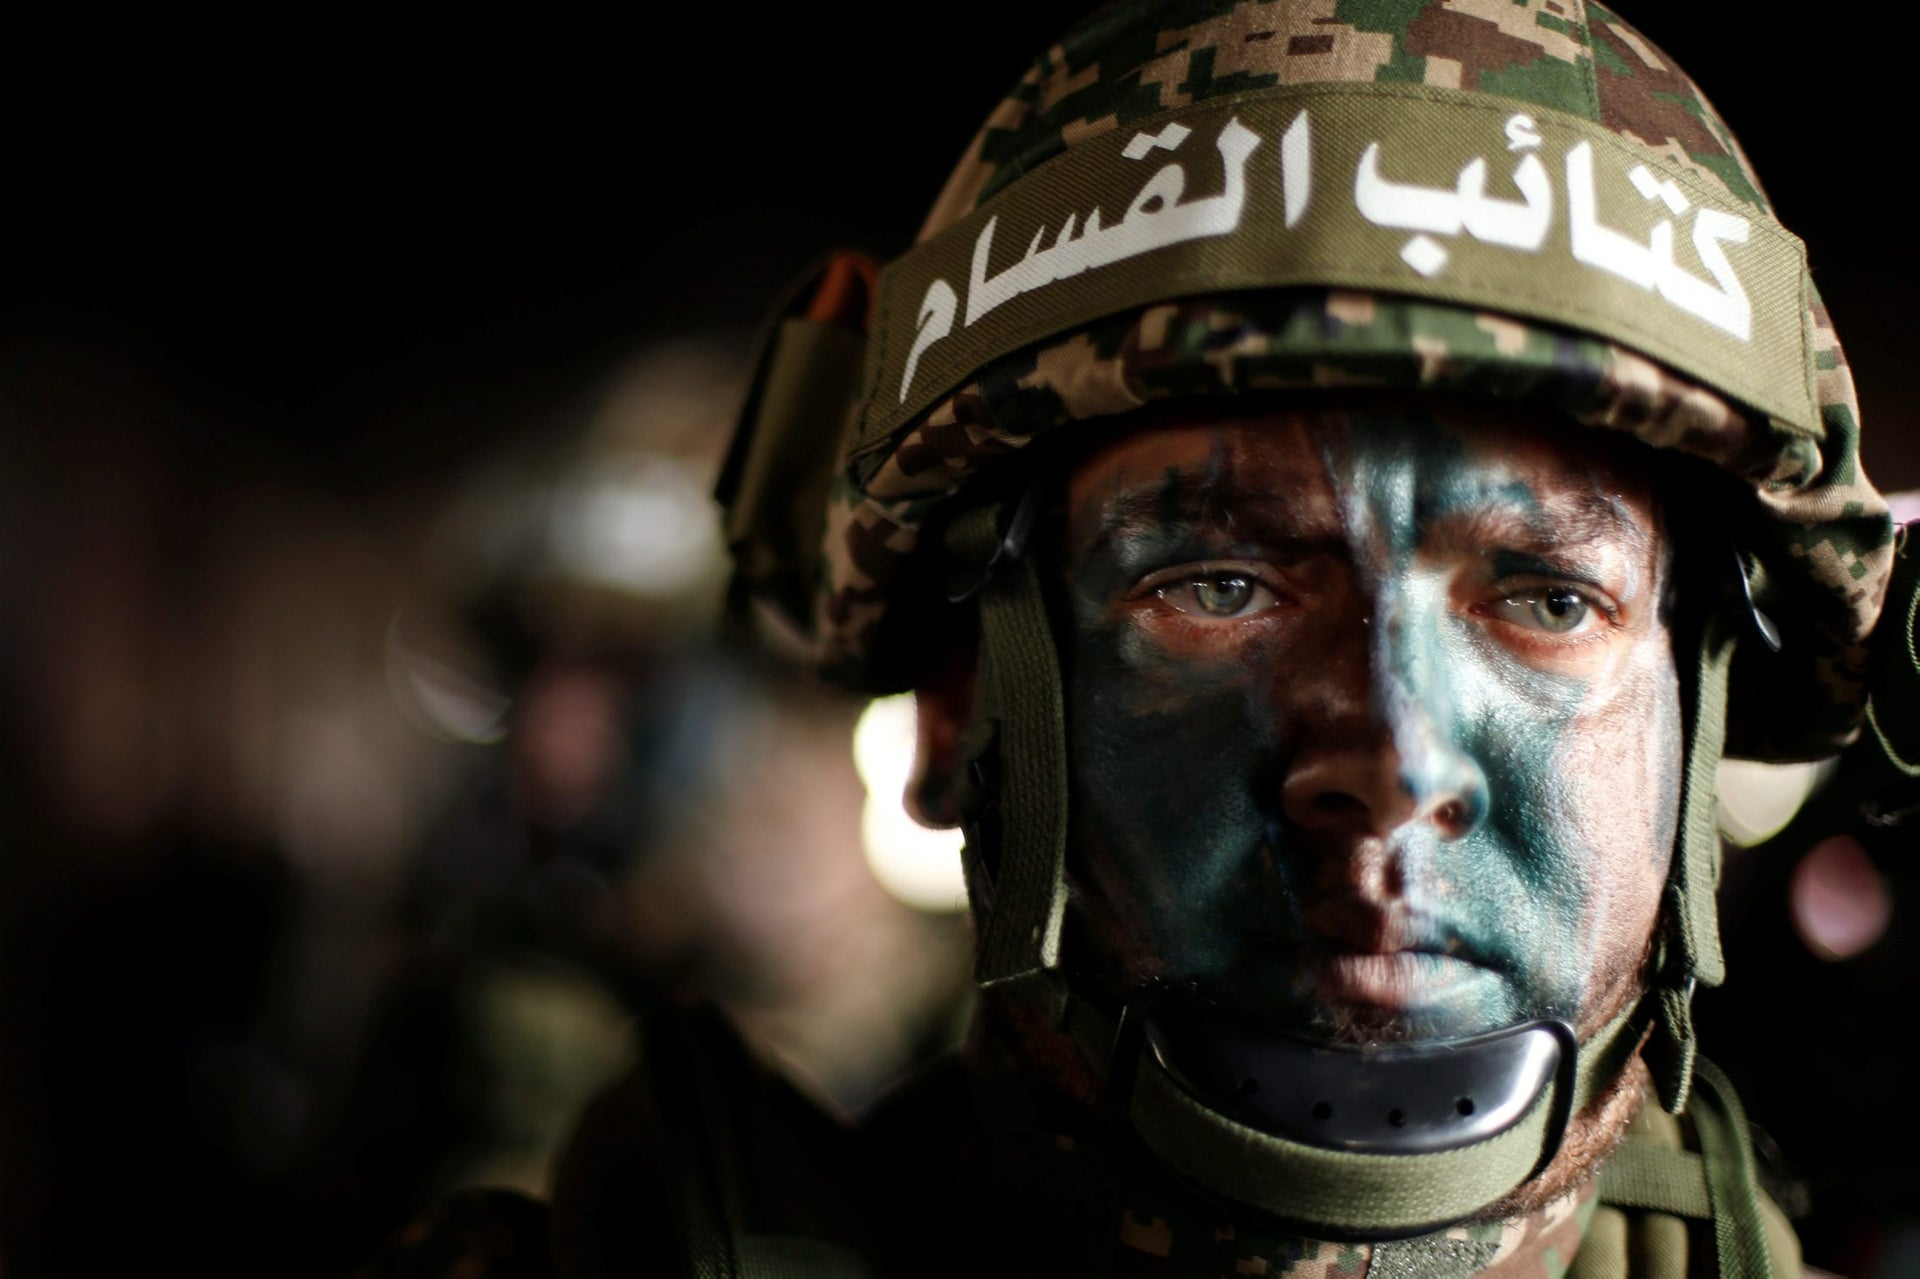 A Palestinian Hamas militant takes part in a rally marking the 30th anniversary of Hamas' founding, in Gaza City December 14, 2017.